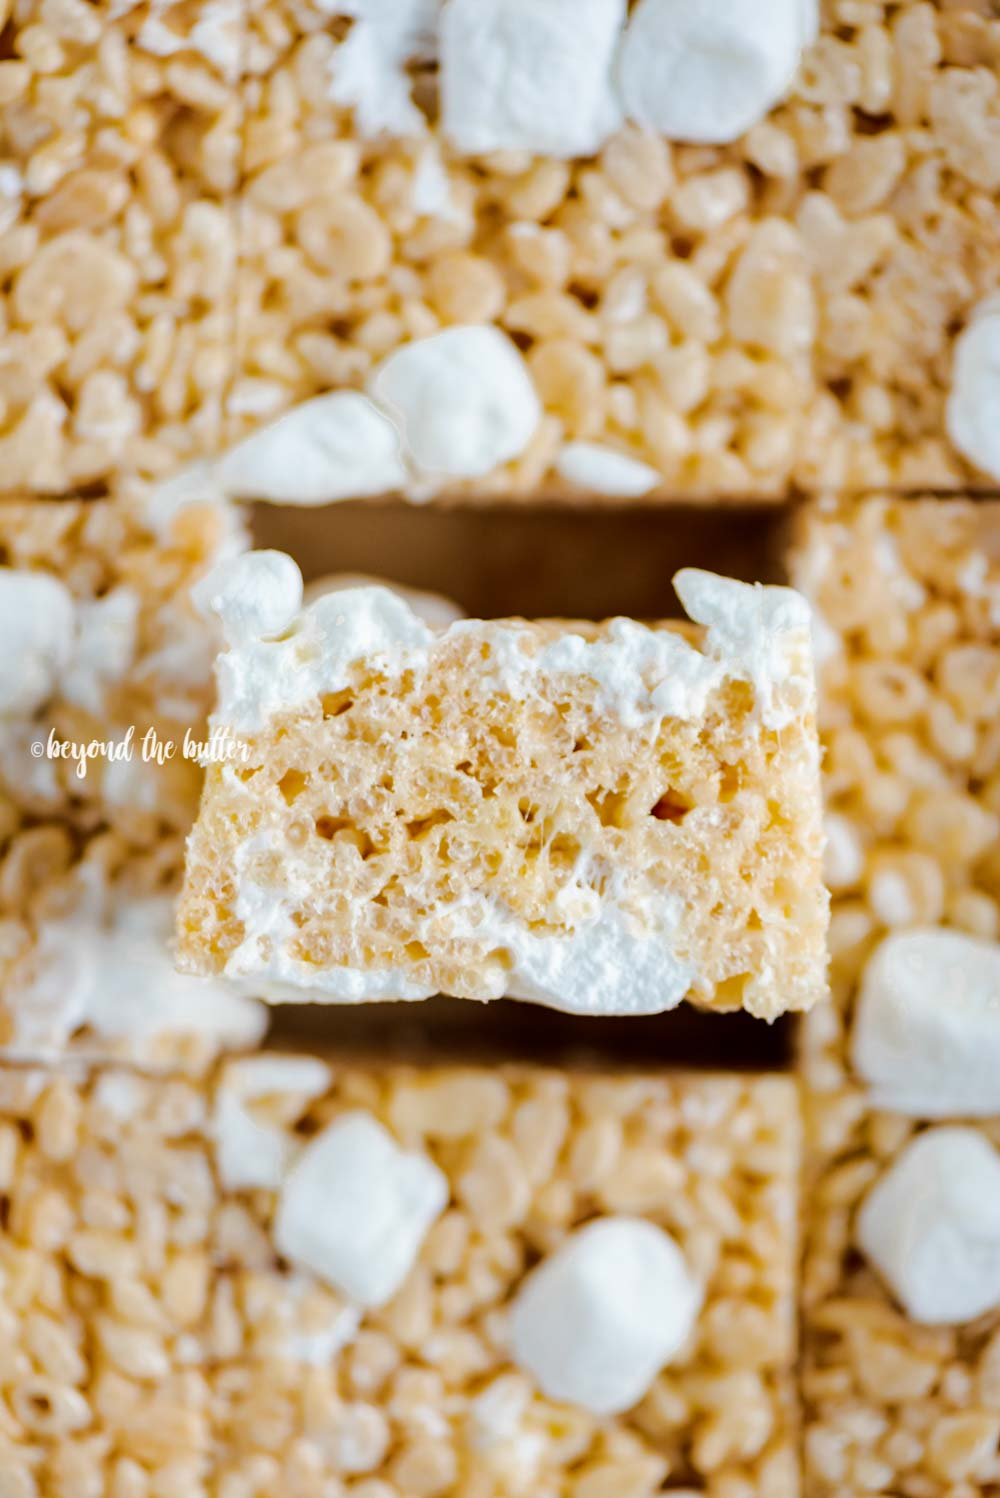 Closeup overhead image of just cut rice krispie treats with one placed on its side | All Images © Beyond the Butter™